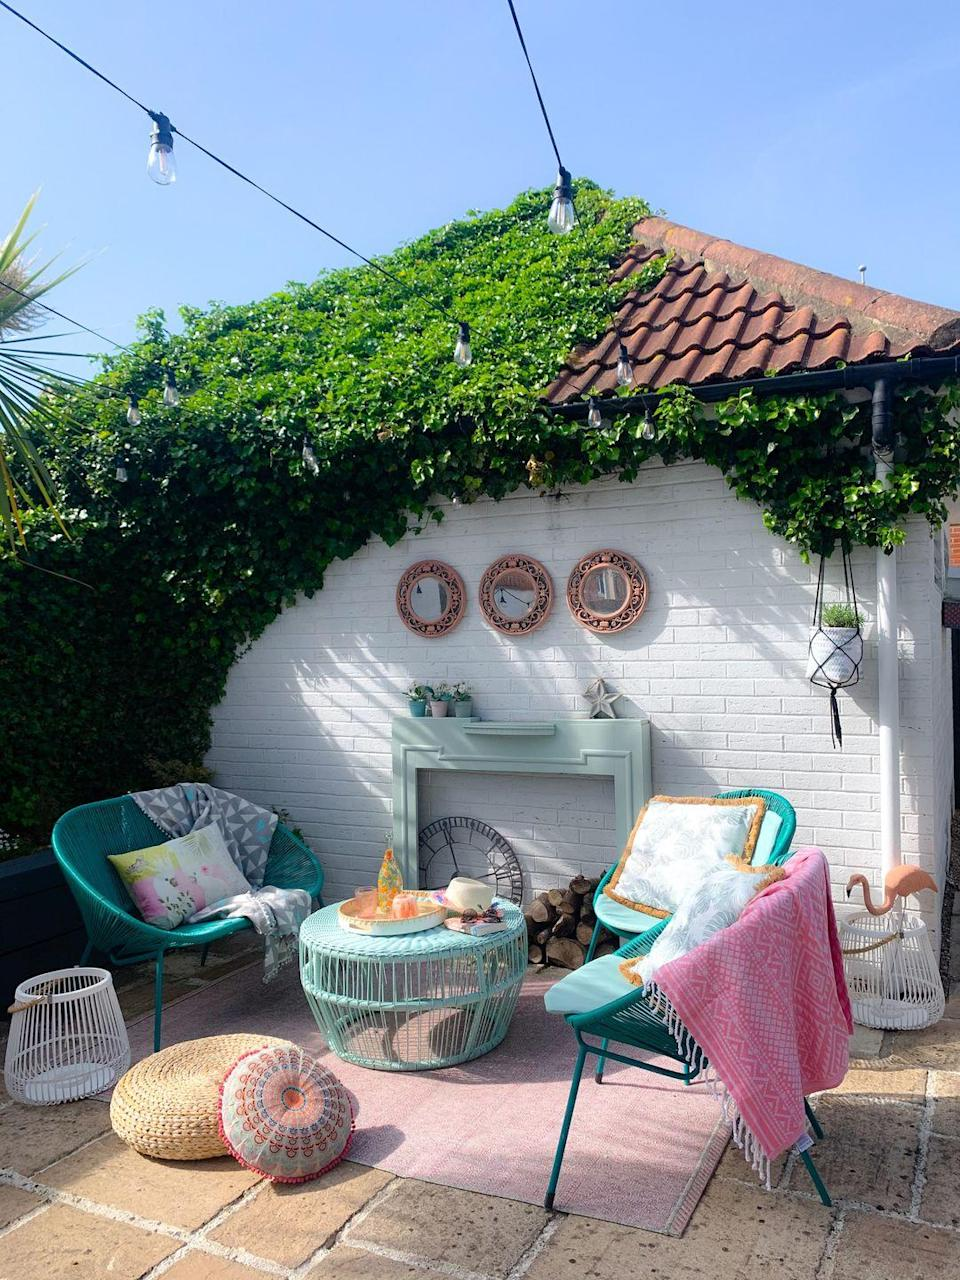 <p>'Inspired by a trip to Miami, we've loved bringing the mix of pastels, palm prints, flamingo and Art Deco geometric shapes to the garden,' Kel explains.</p>